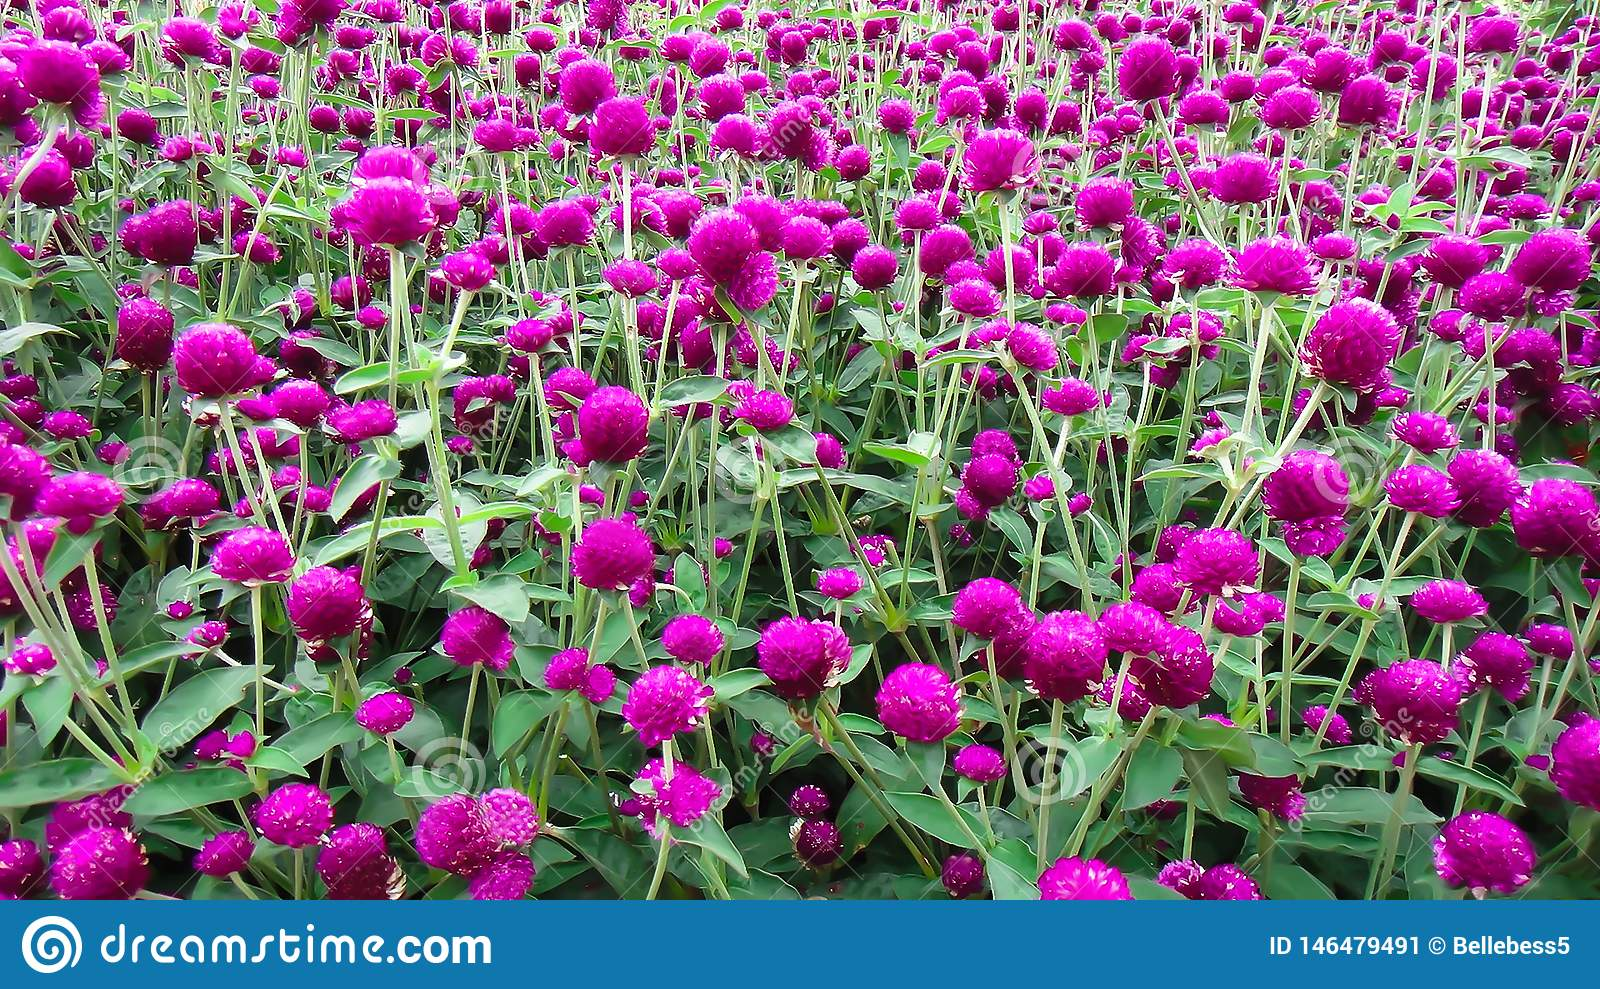 Amaranth Is A Cosmopolitan Genus Of Annual Or Short Lived